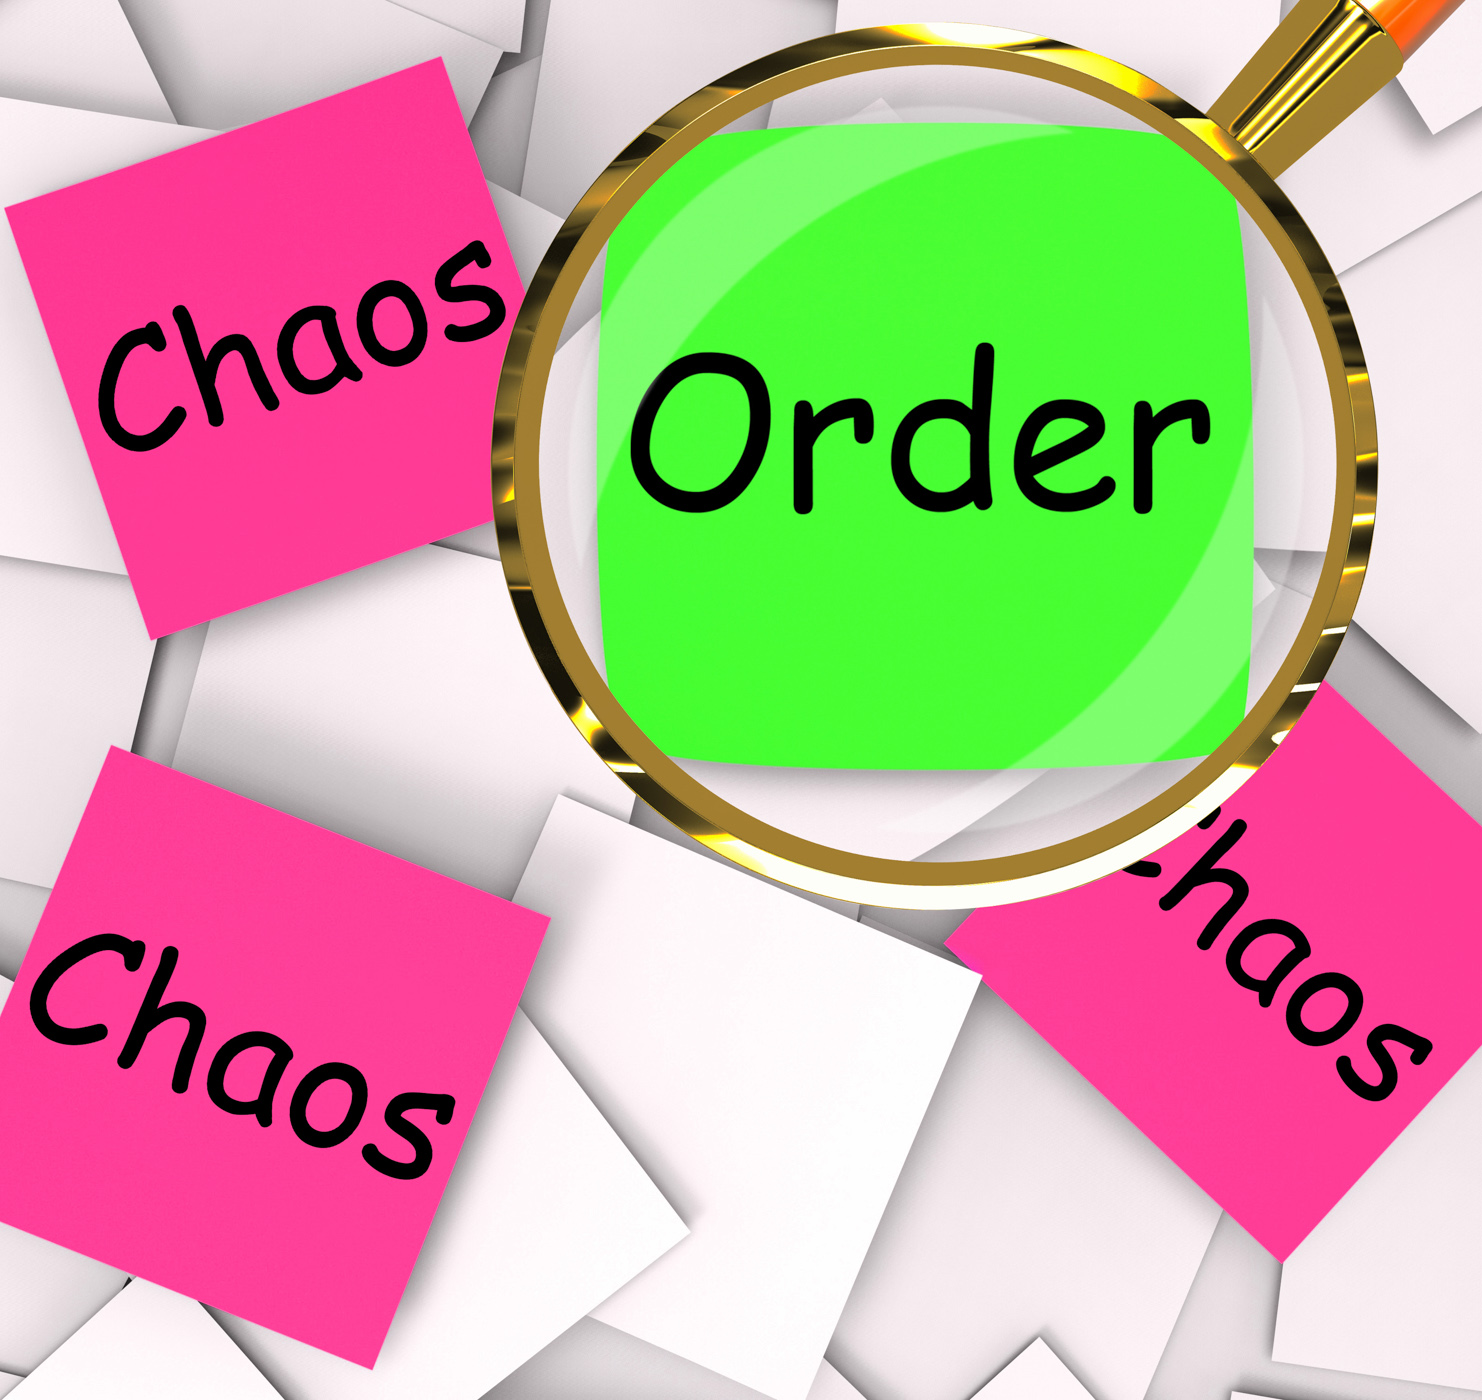 Order chaos post-it papers mean orderly or chaotic photo